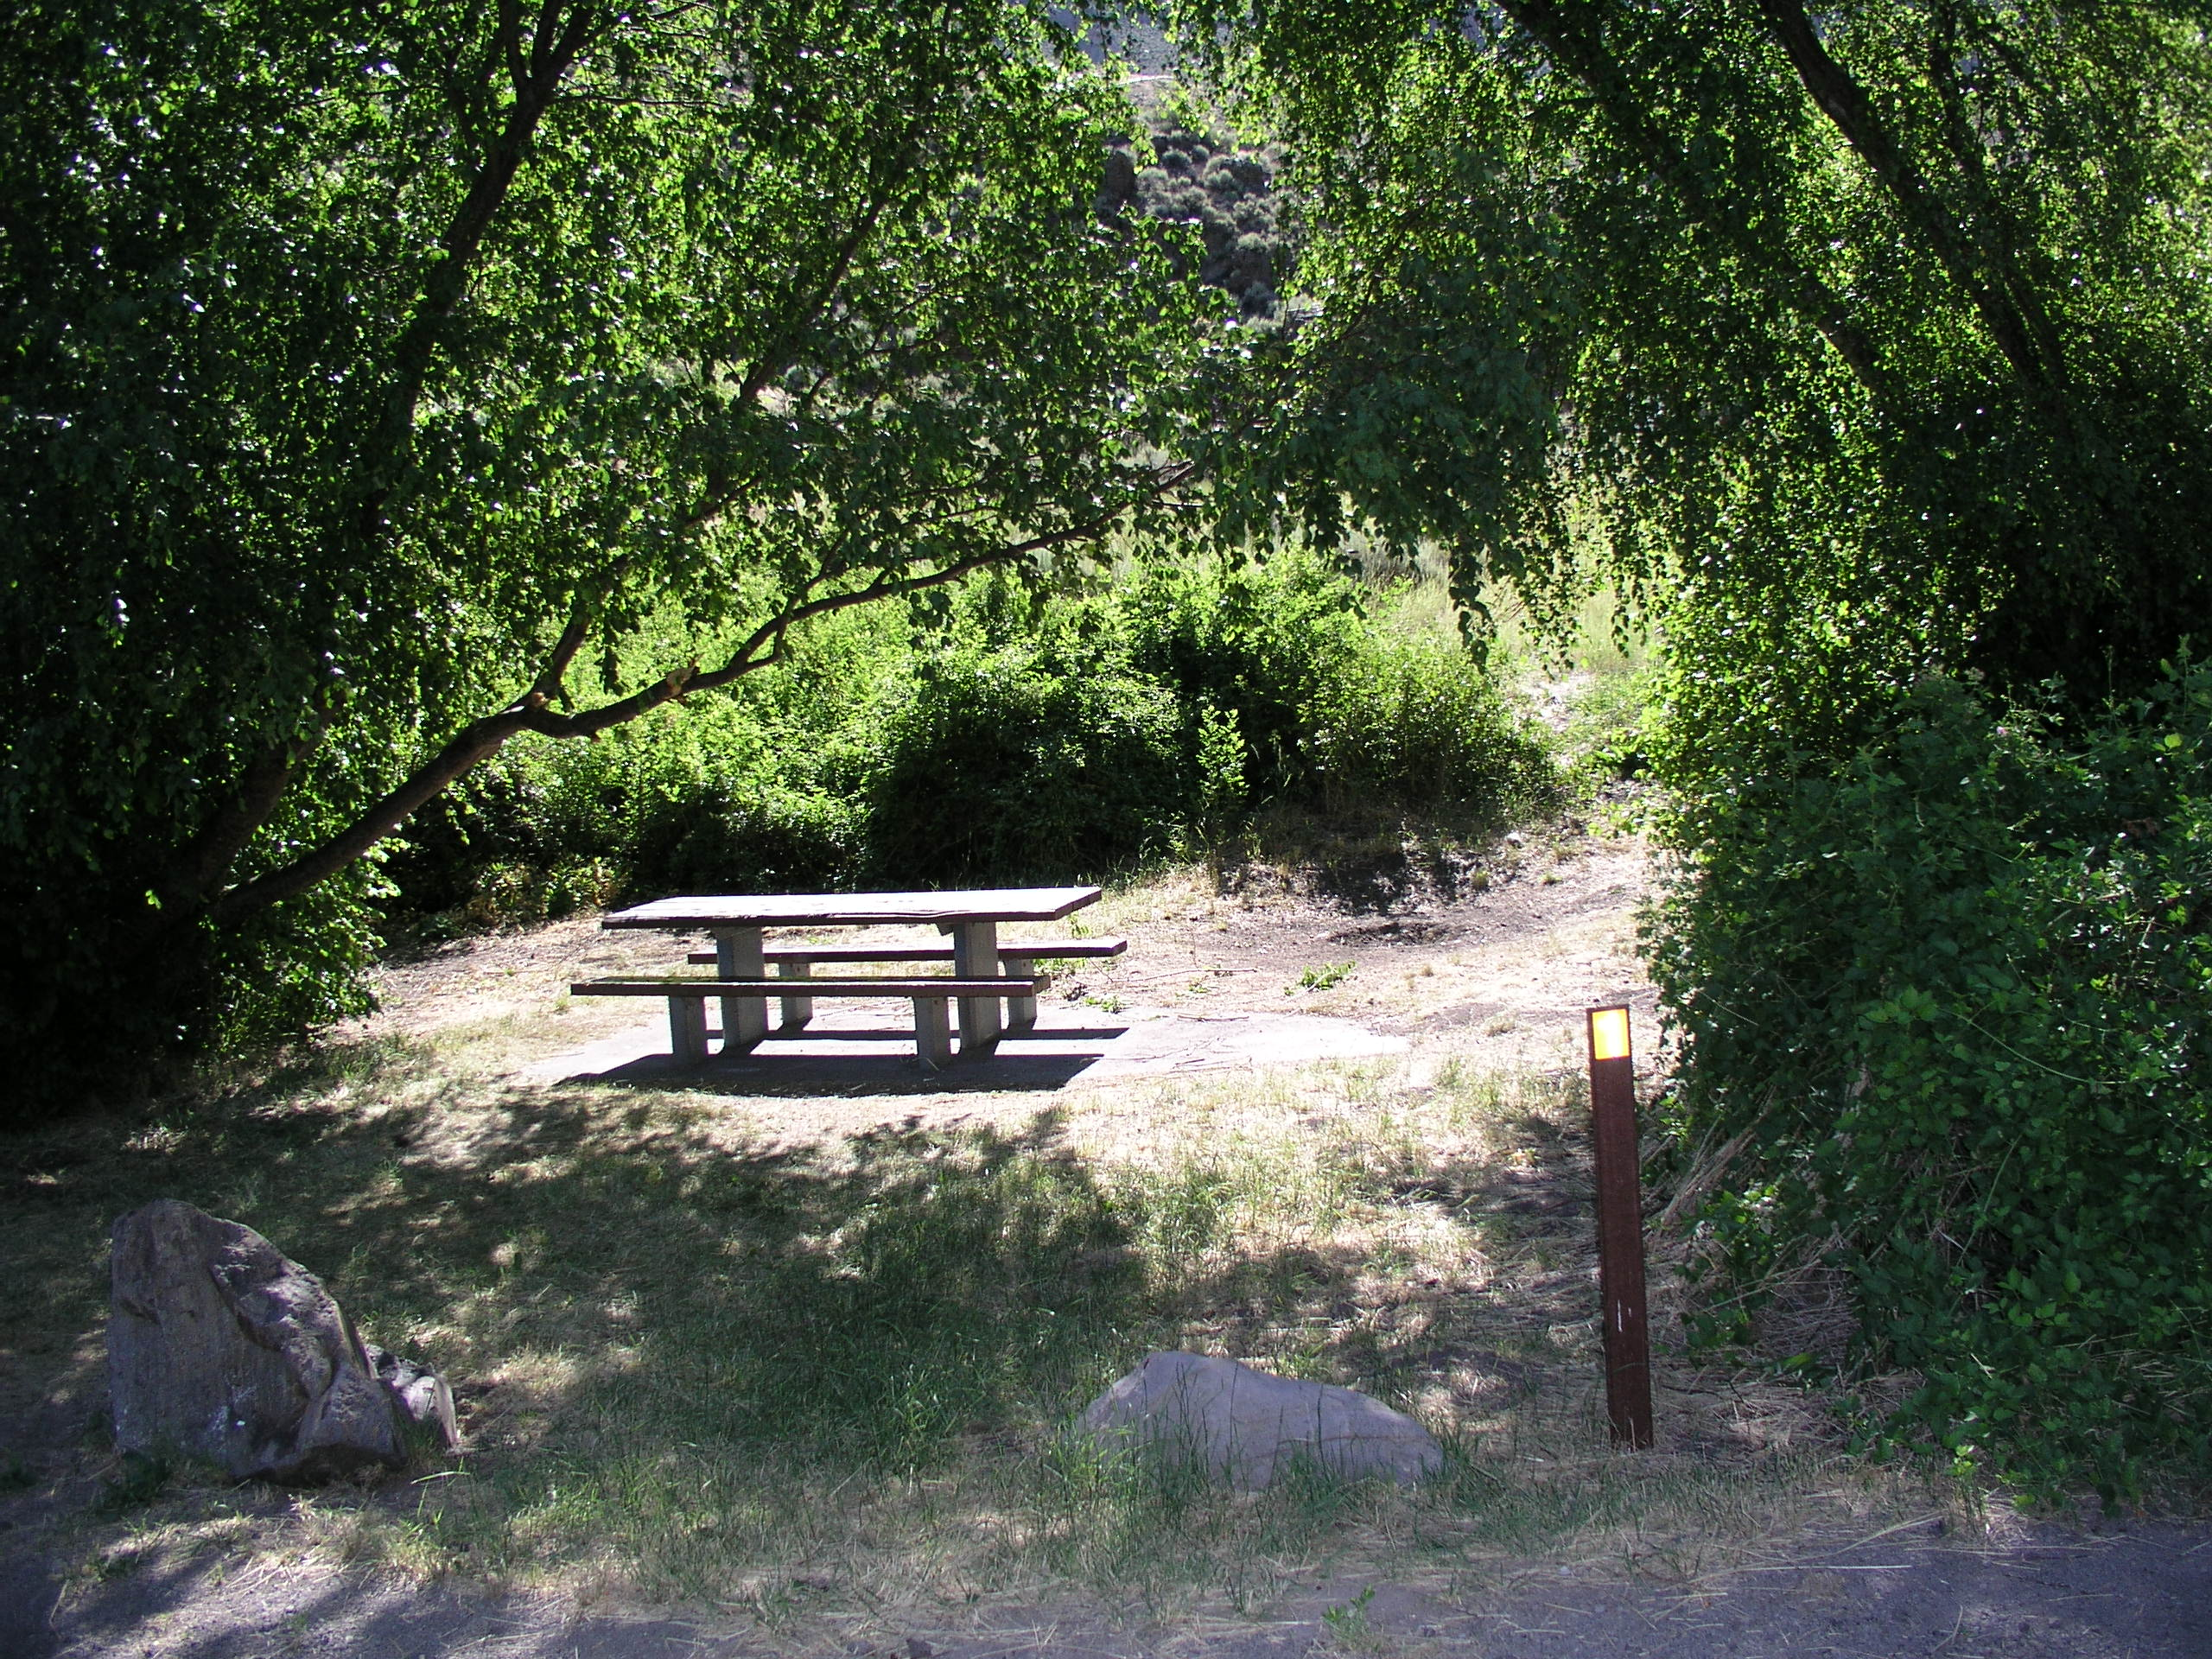 Picnic table and vegetation